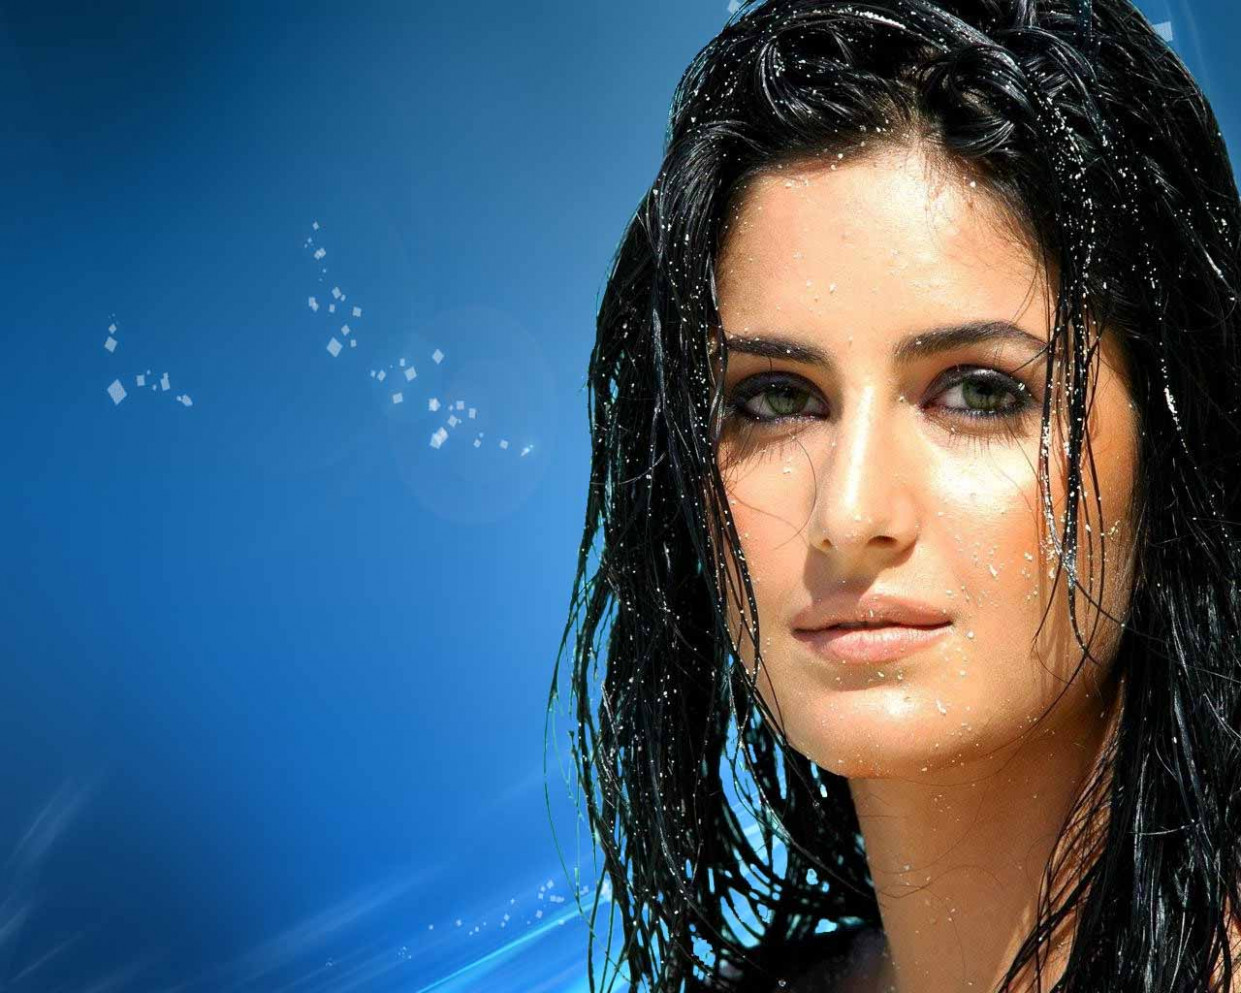 Katrina Kaif Bollywood Girl Wallpapers | HD Wallpapers ...